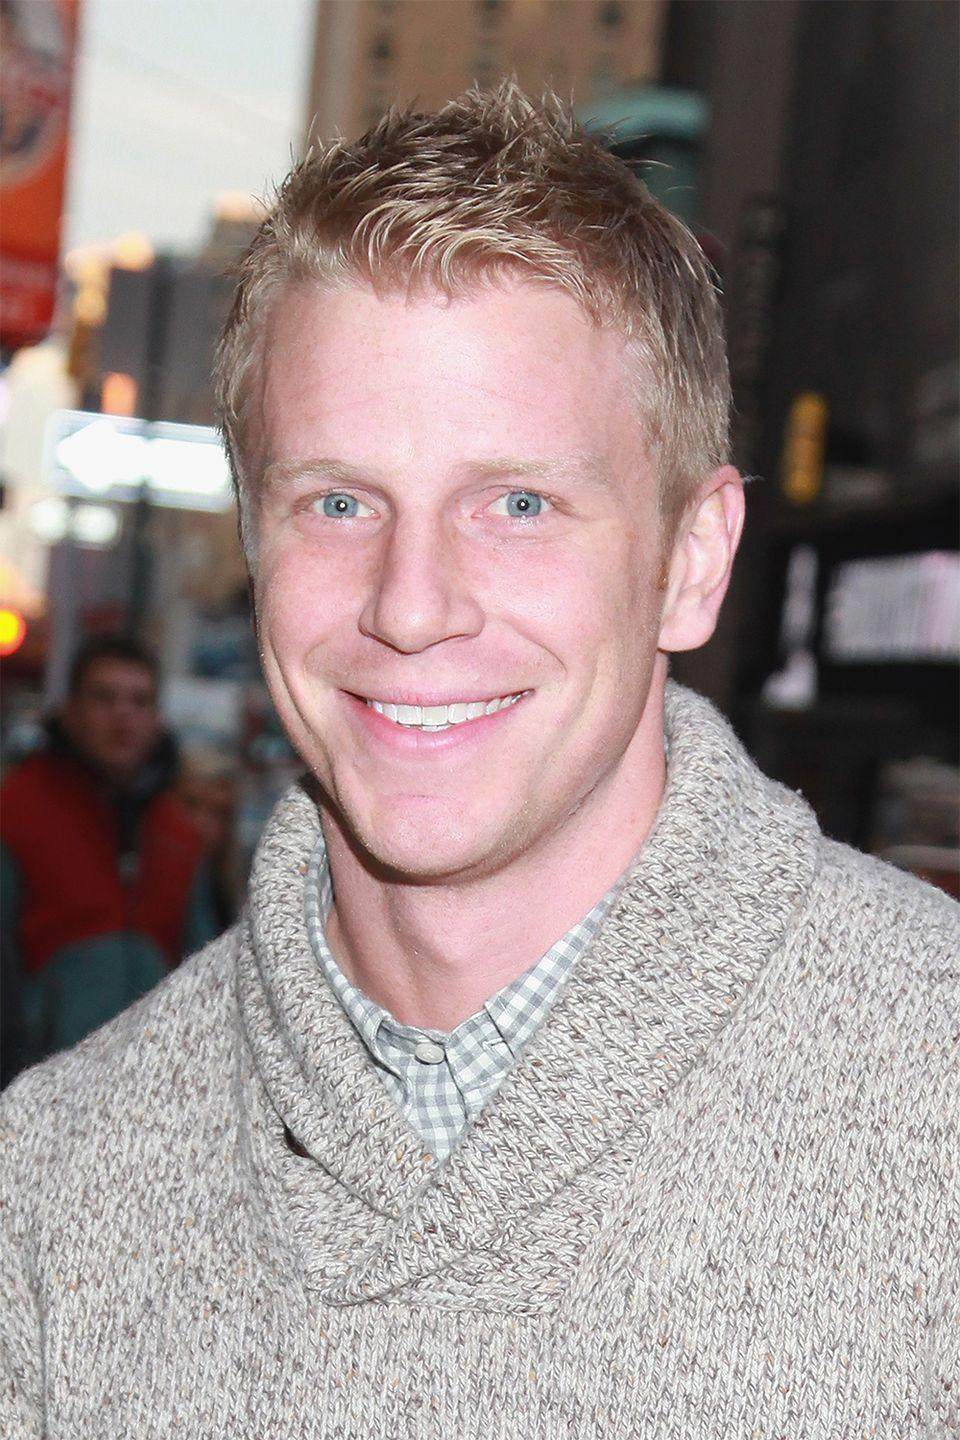 """<p>Despite his nickname, """"Virgin Bachelor,"""" Sean Lowe had sex while single. But when he began a relationship with his now-wife, Catherine Giudici, they decided to wait to be intimate until they were married. </p><p>""""I didn't have sex in college. And honestly, I don't even know if I knew at that time why I took that stance. After graduating college, I moved back to Dallas. I was dating other girls and I started having sex, and I would feel extremely guilty afterwards,"""" the former <em>Bachelor </em>star <a href=""""http://time.com/12831/bachelor-sean-lowe-celibacy-virgin-bachelor/"""" rel=""""nofollow noopener"""" target=""""_blank"""" data-ylk=""""slk:said in an interview"""" class=""""link rapid-noclick-resp"""">said in an interview</a>. """"But after that guilt faded, then I'd start talking to some other girl and go down that same path of destruction….At the age of 24 I finally became a man. I said, 'Okay, Jesus, let's do it again.'<br></p>"""